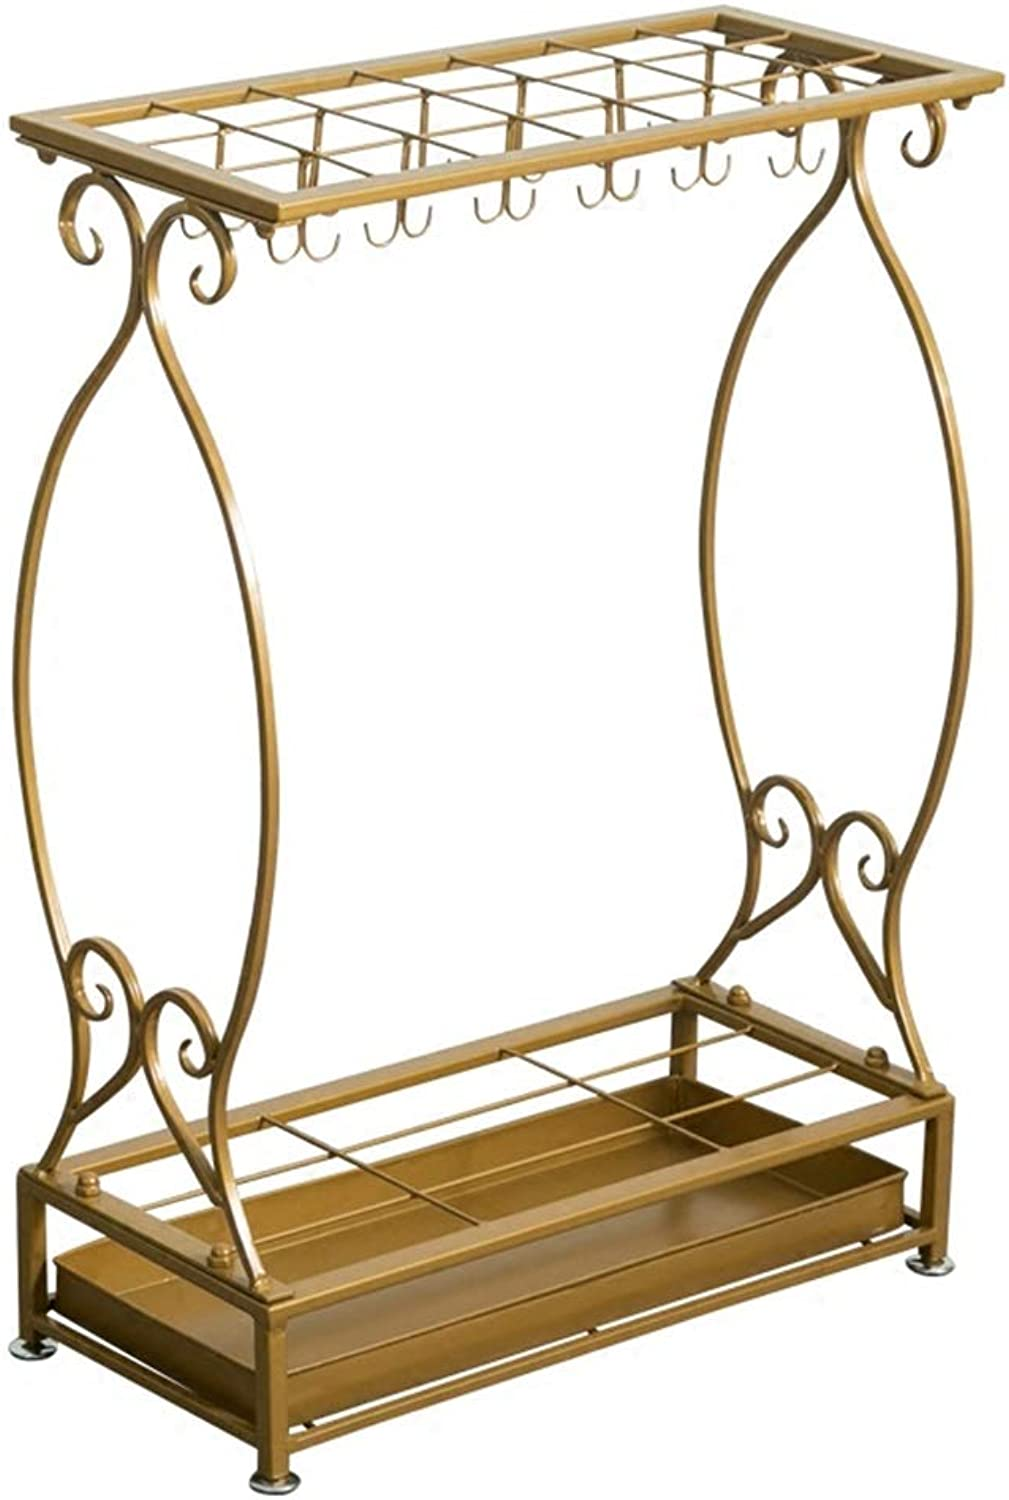 Zr Large-Capacity Multifunctional Simple Wrought Iron Umbrella Stand Fashion Firm Hotel Family Rainy Day Essential Storage Rack (color   gold)